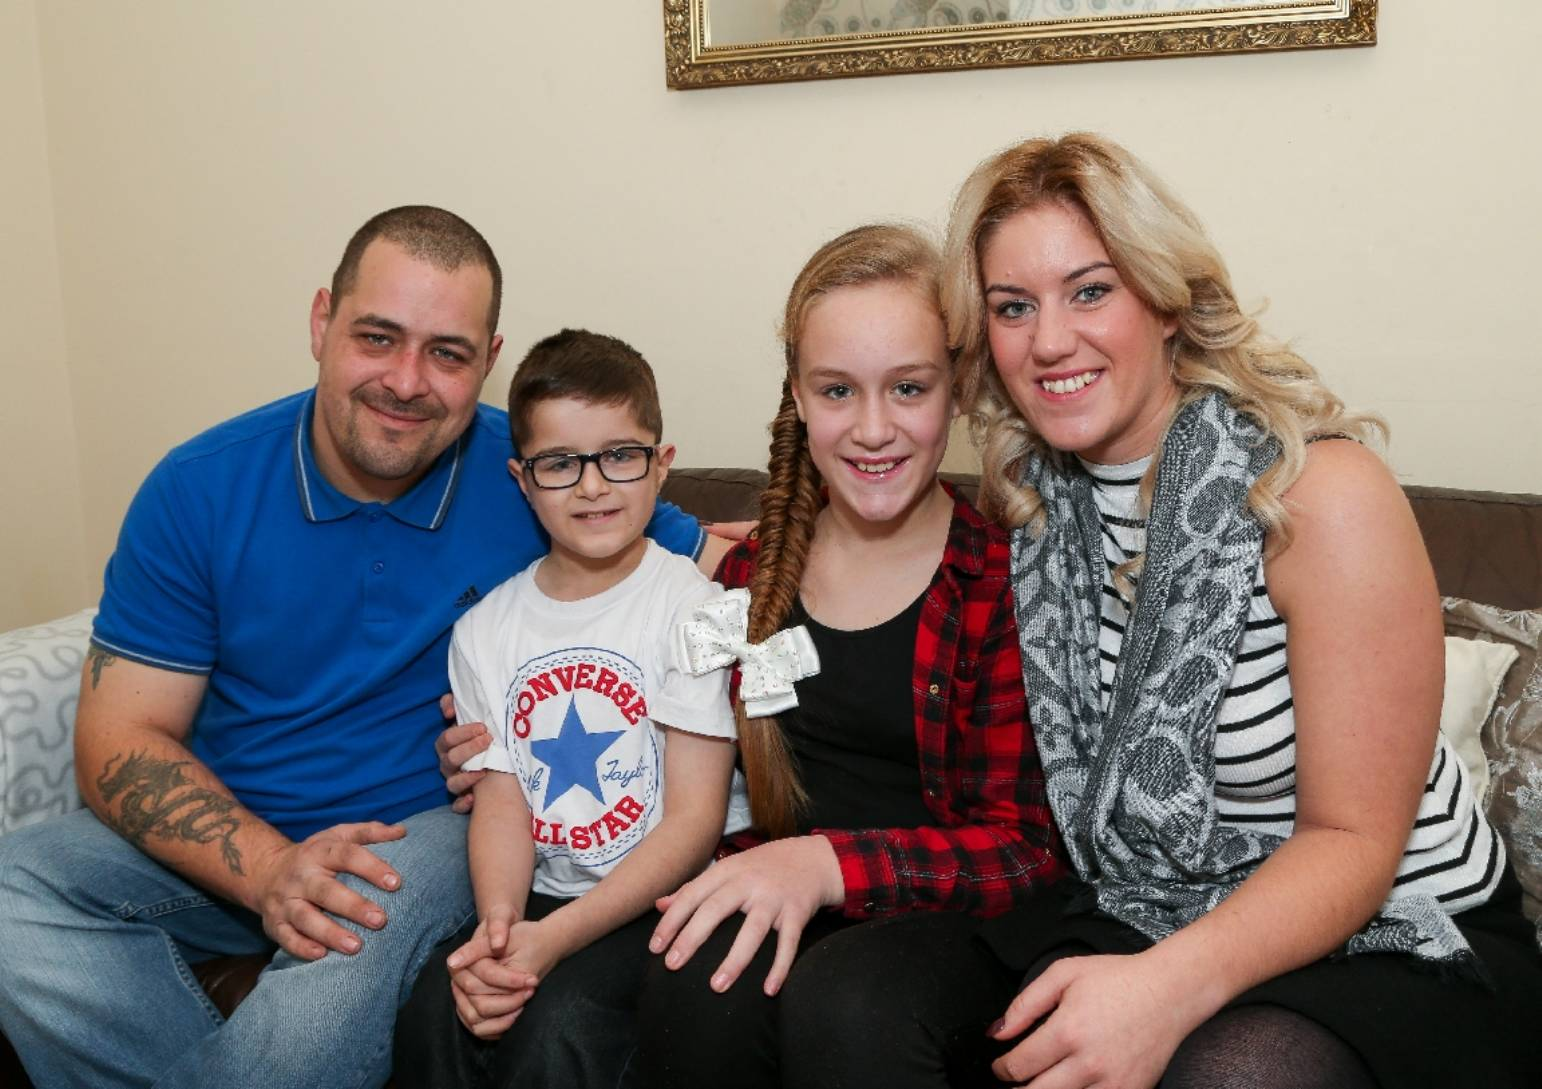 Search intensifies to find bone marrow donor match for Kieron